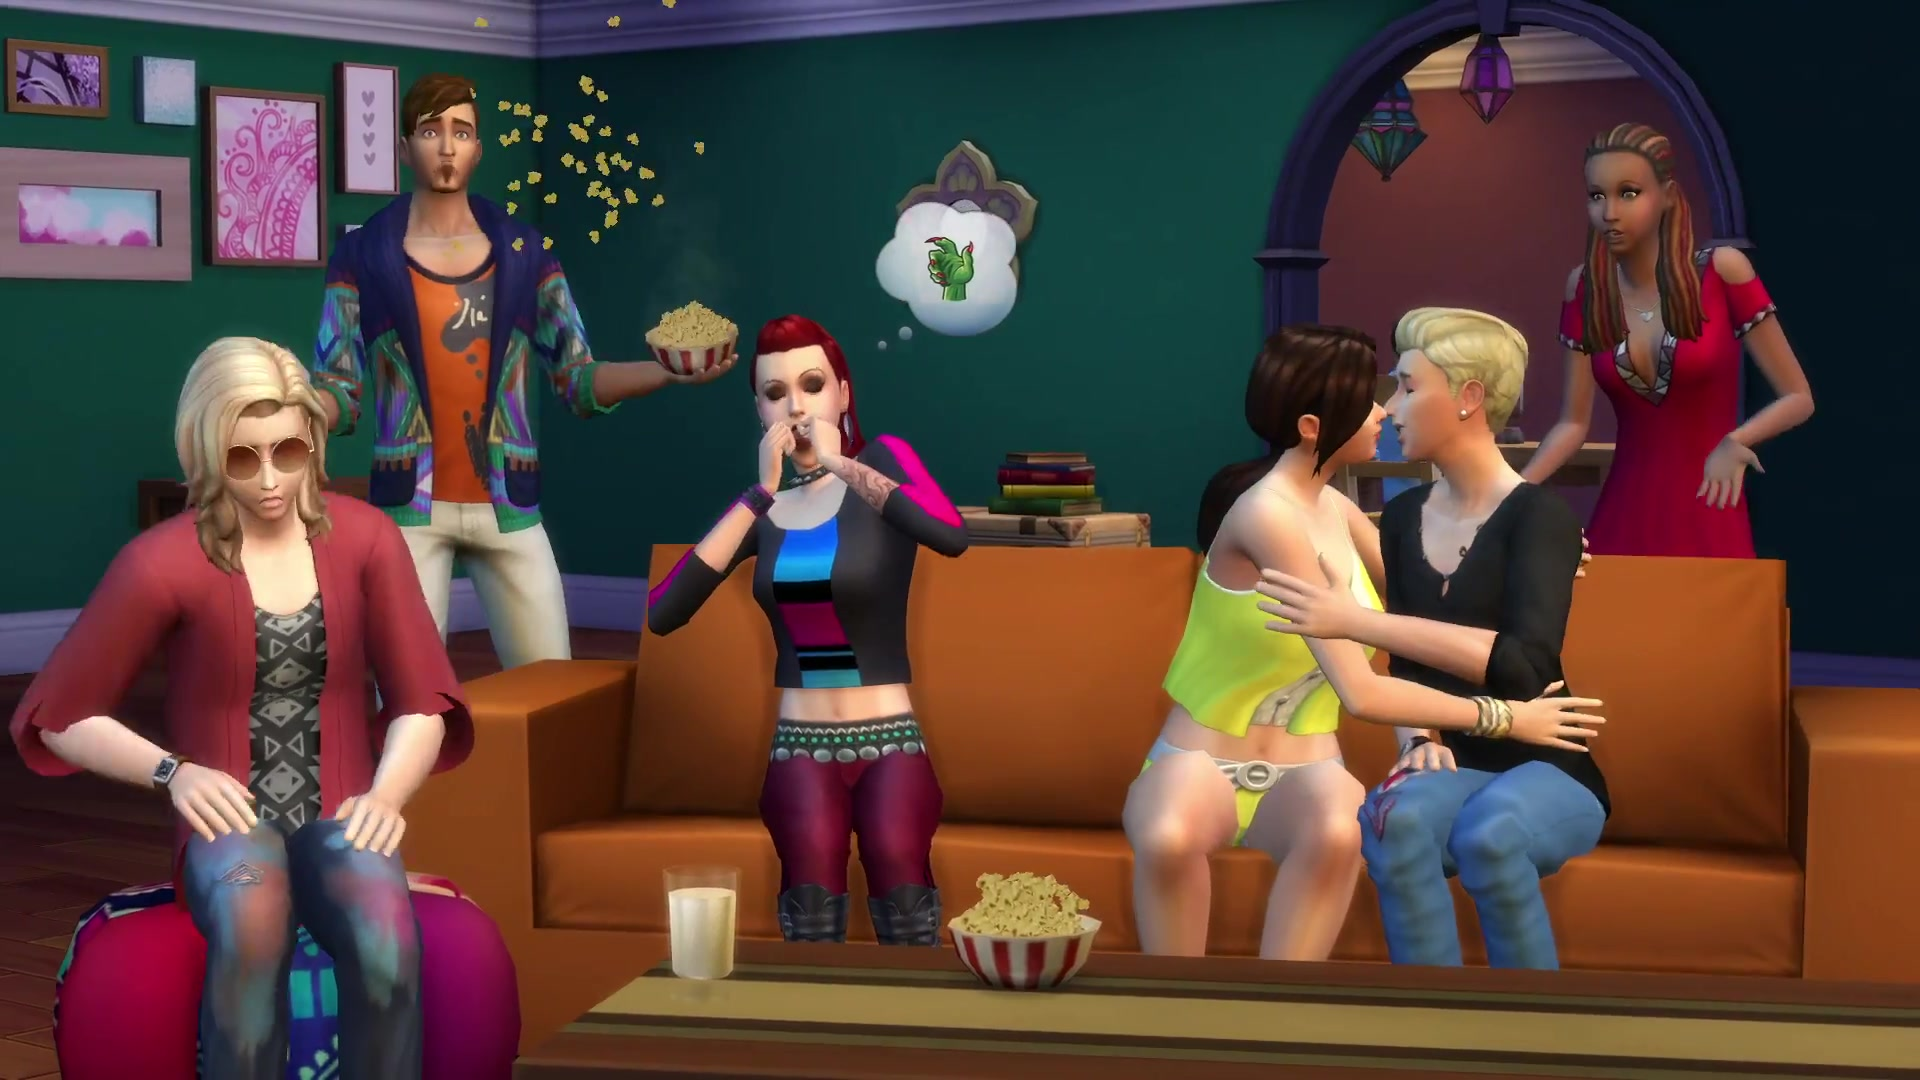 the sims 4 movie hangout info bits by simgurugraham simsvip